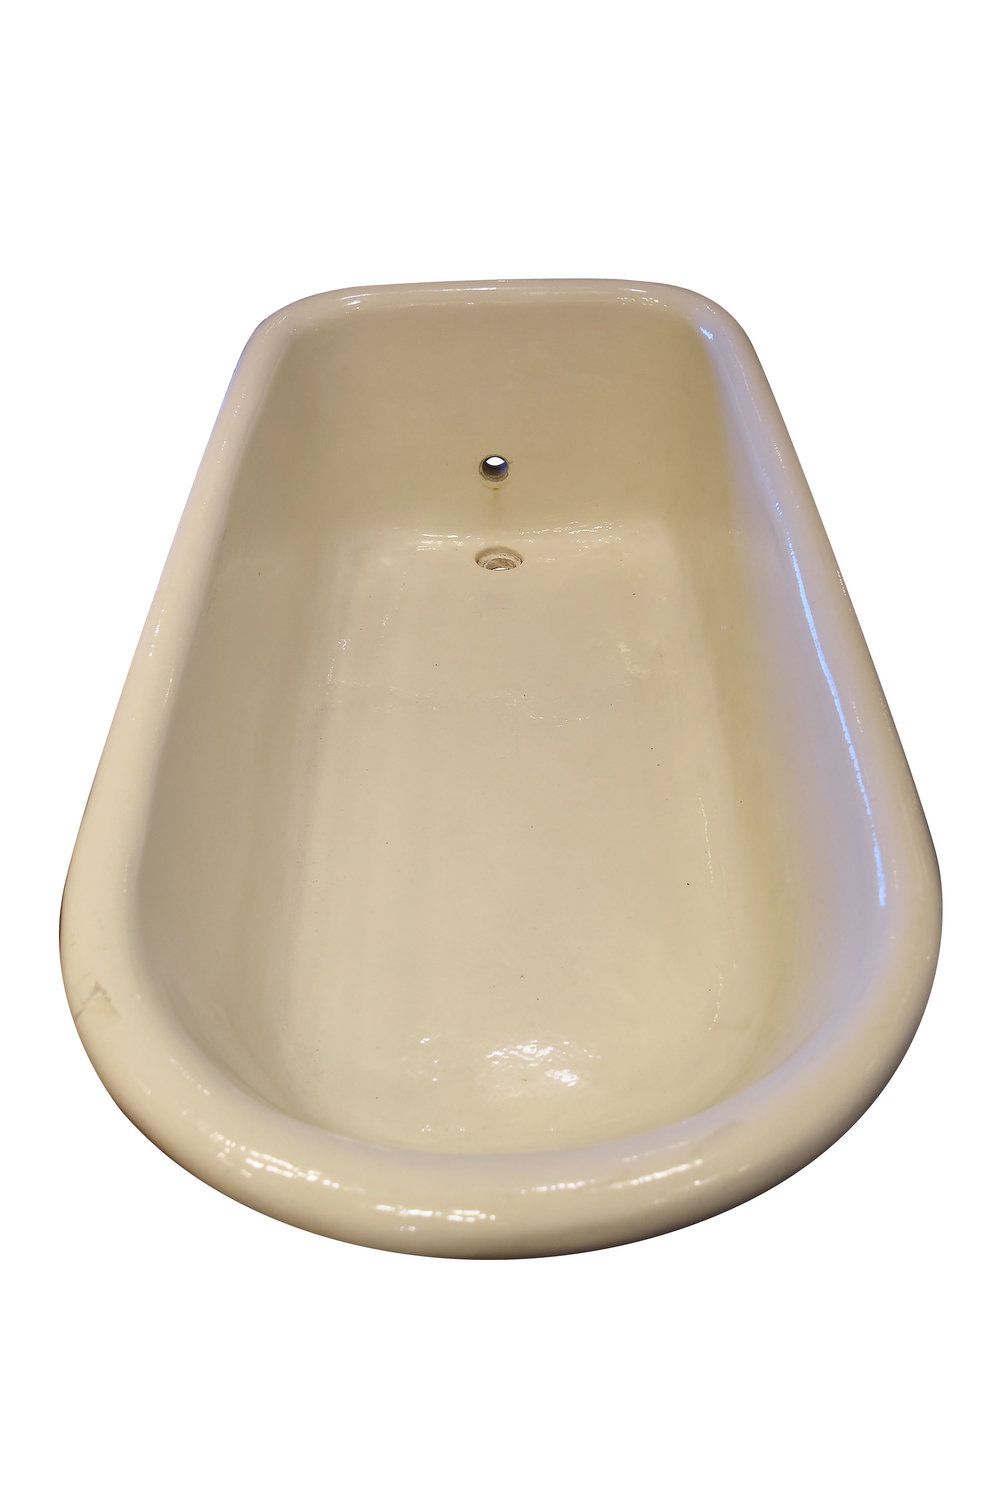 47988 french tub top view.jpg